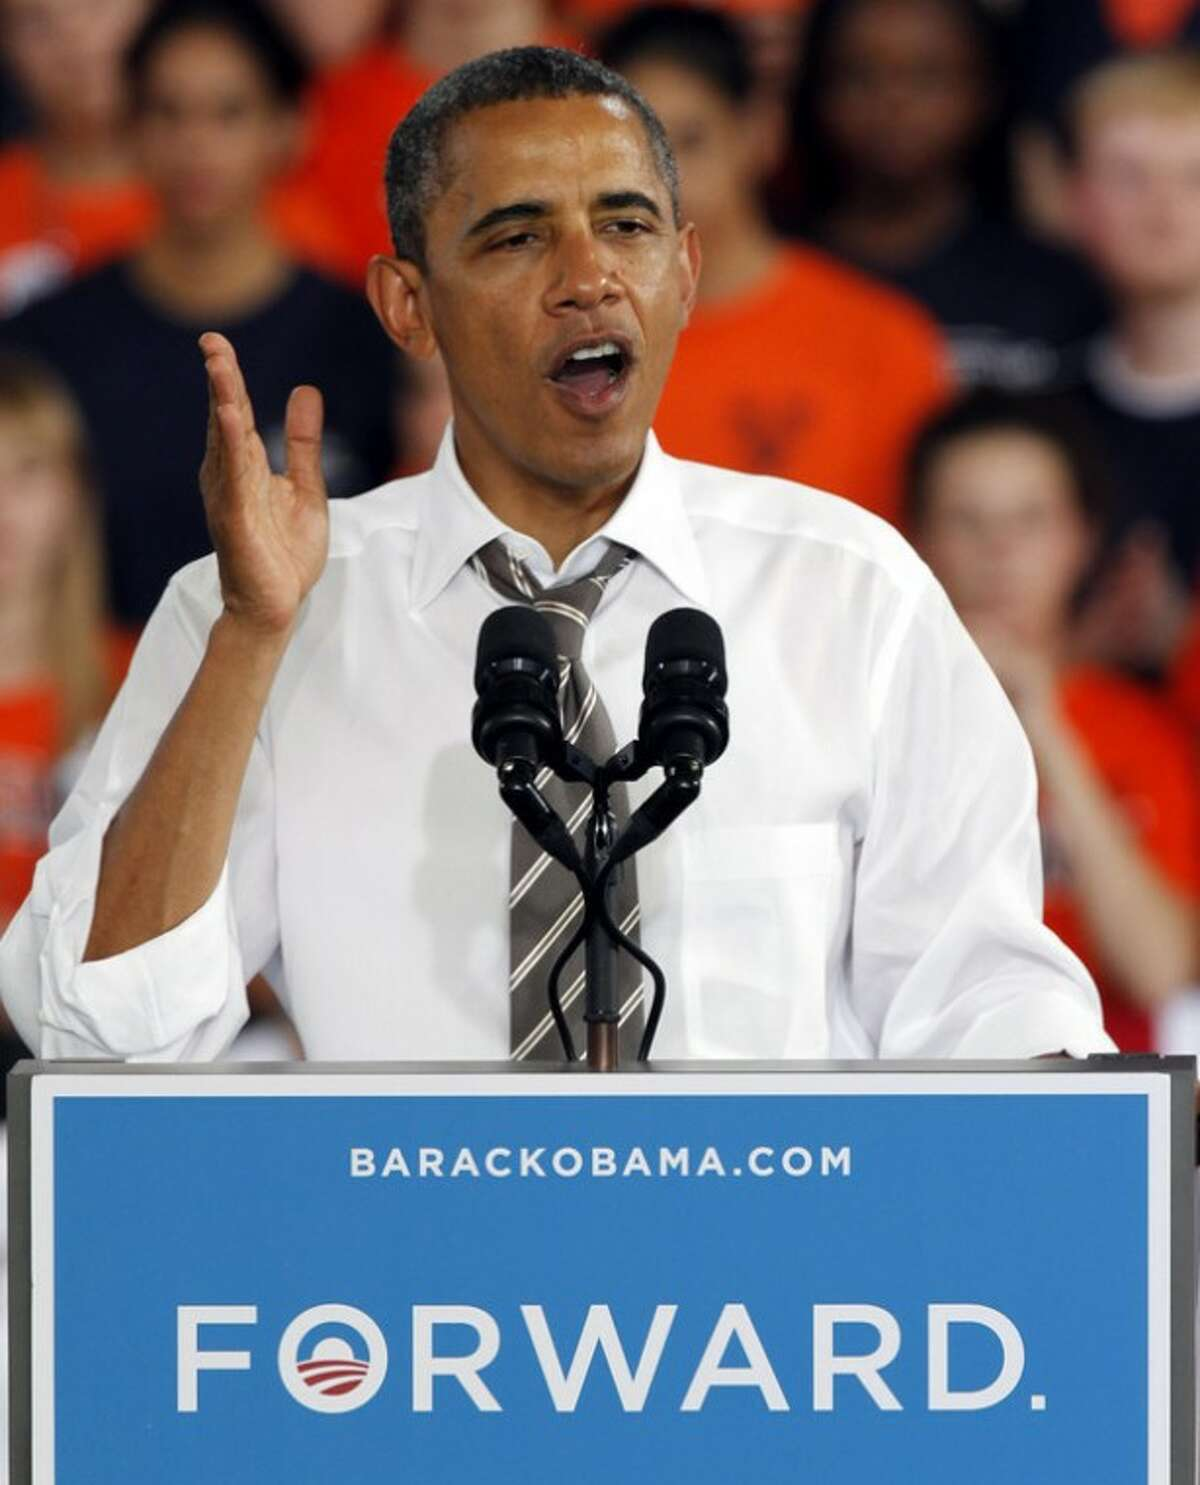 President Barack Obama gestures during a rally in Charlottesville, Va., Wednesday, Aug. 29, 2012. (AP Photo/Steve Helber)